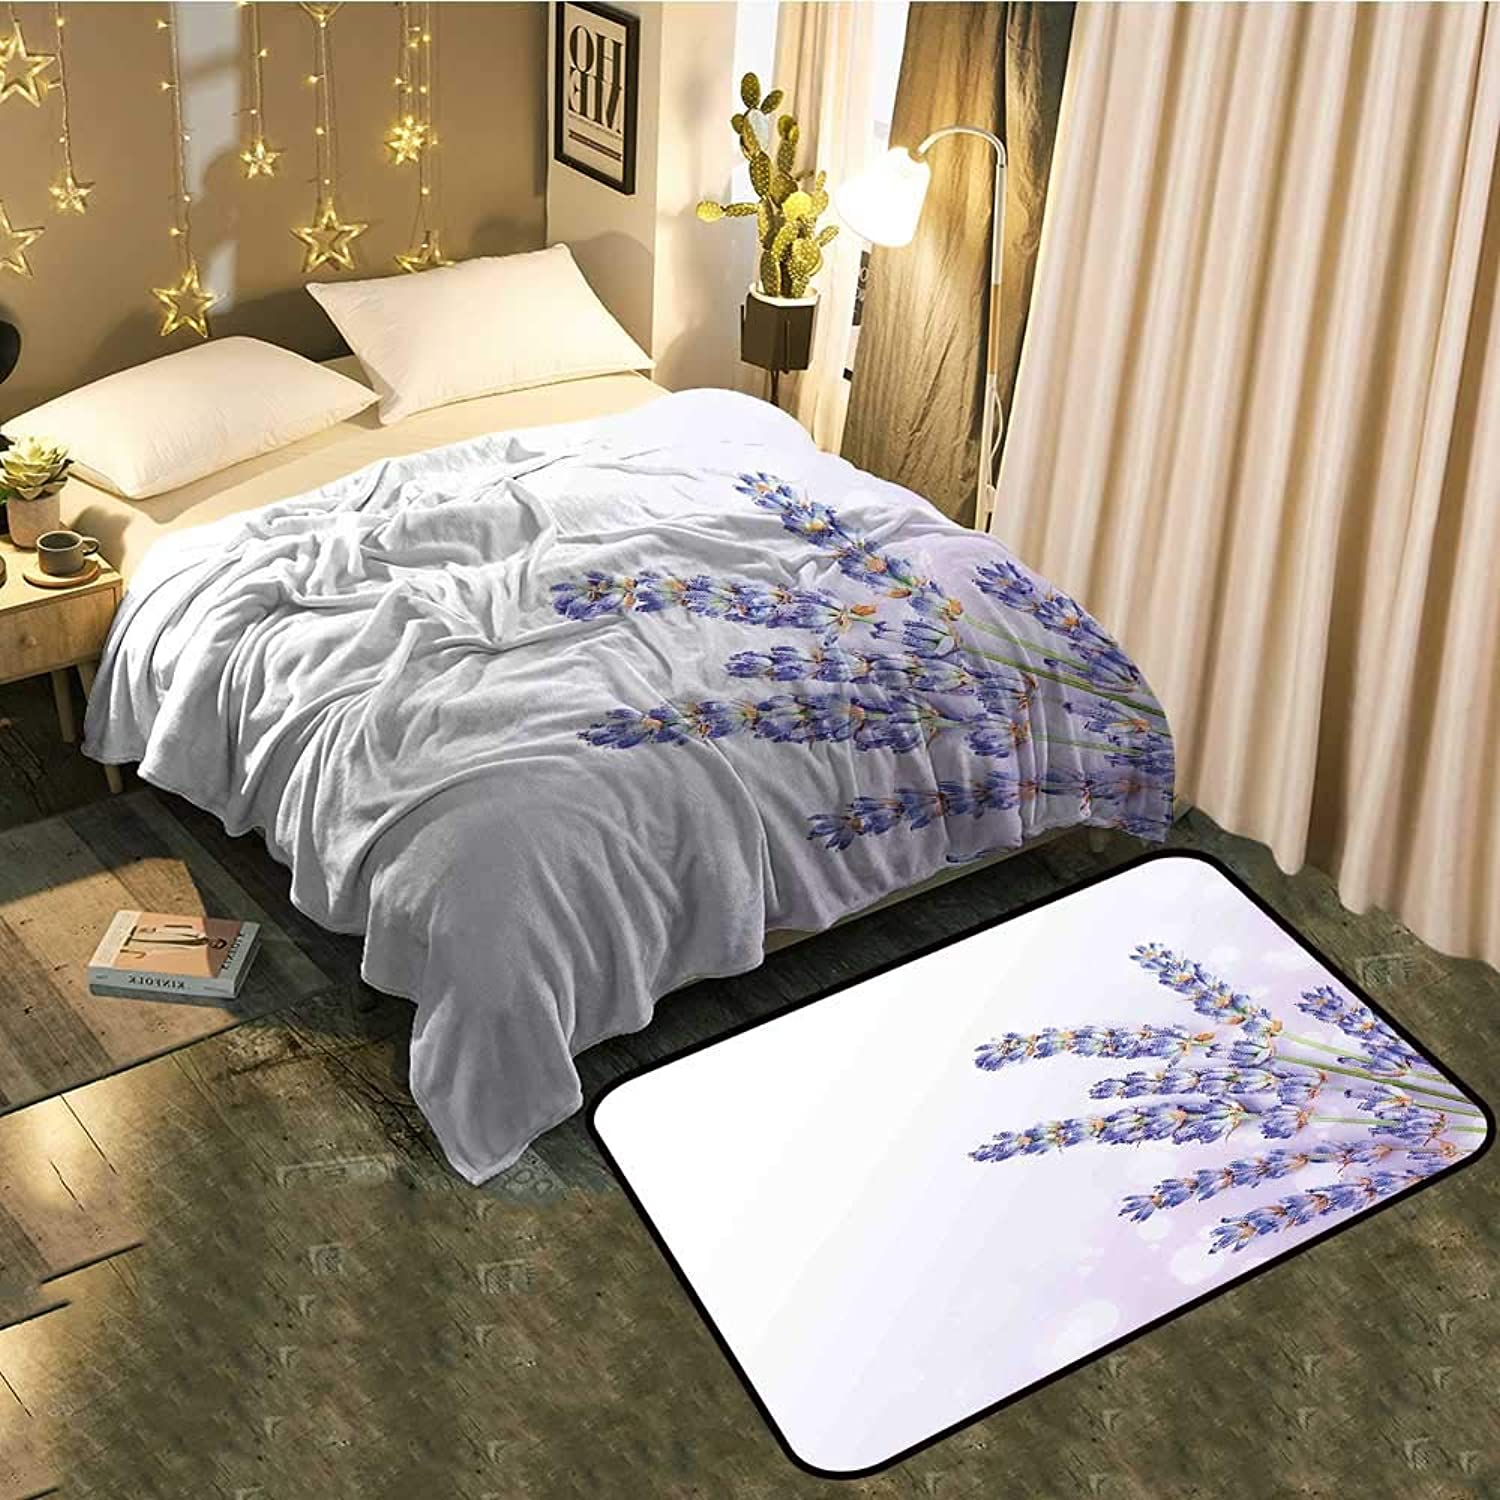 Bedside Blanket Doormat suitPosy of Medicinal Herb Fresh Plant of Purple Flower Spa Aromatheraphy Organic Lavander Cozy and Durable Blanket 50 x70  Mat 2'X4'